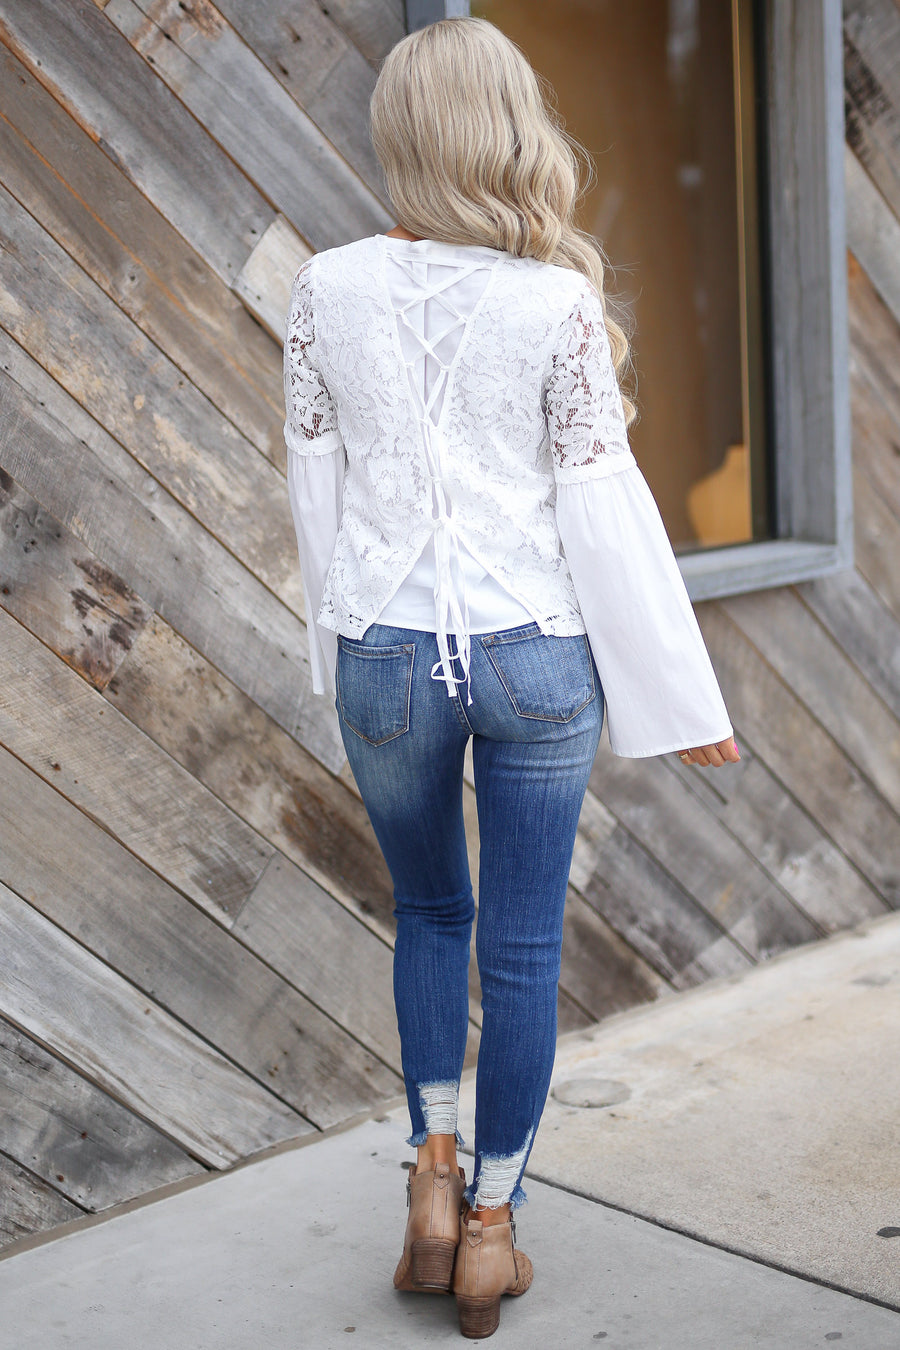 Giving Second Glances Top - White lace bell sleeve top, front, Closet Candy Boutique